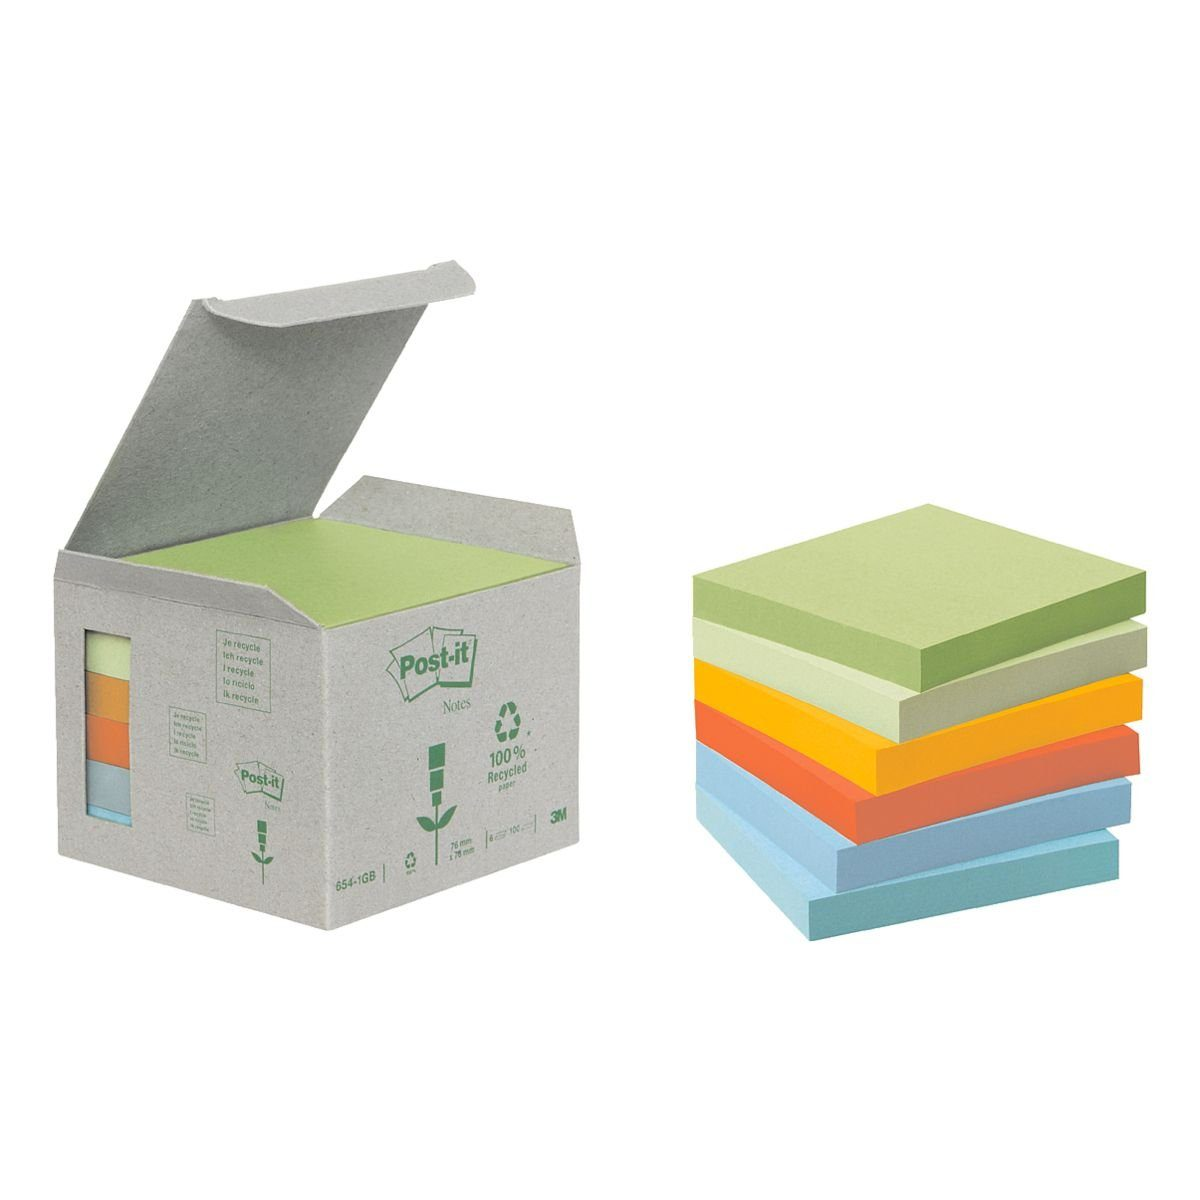 Post-it Notes (Recycle) Haftnotizblock 7,6 x 7,6 cm, 6 Stück »Recycling Notes 654«